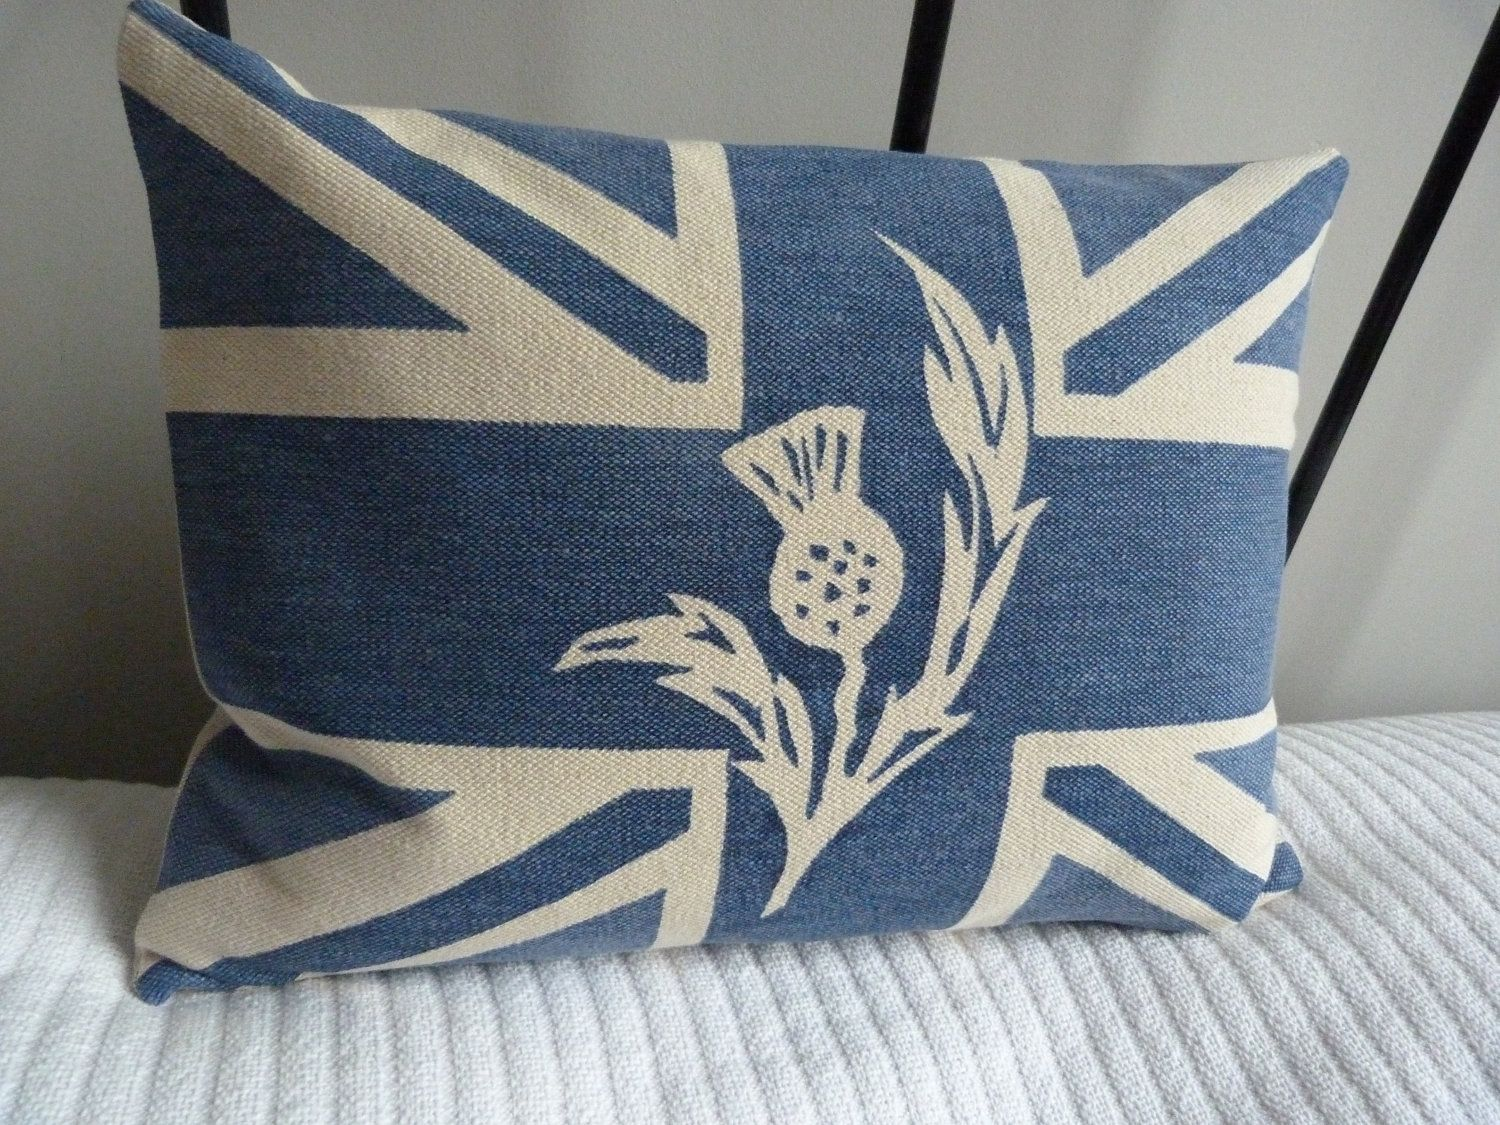 hand printed royal blue scottish thistle union jack flag cushion. $65.00,  via Etsy.